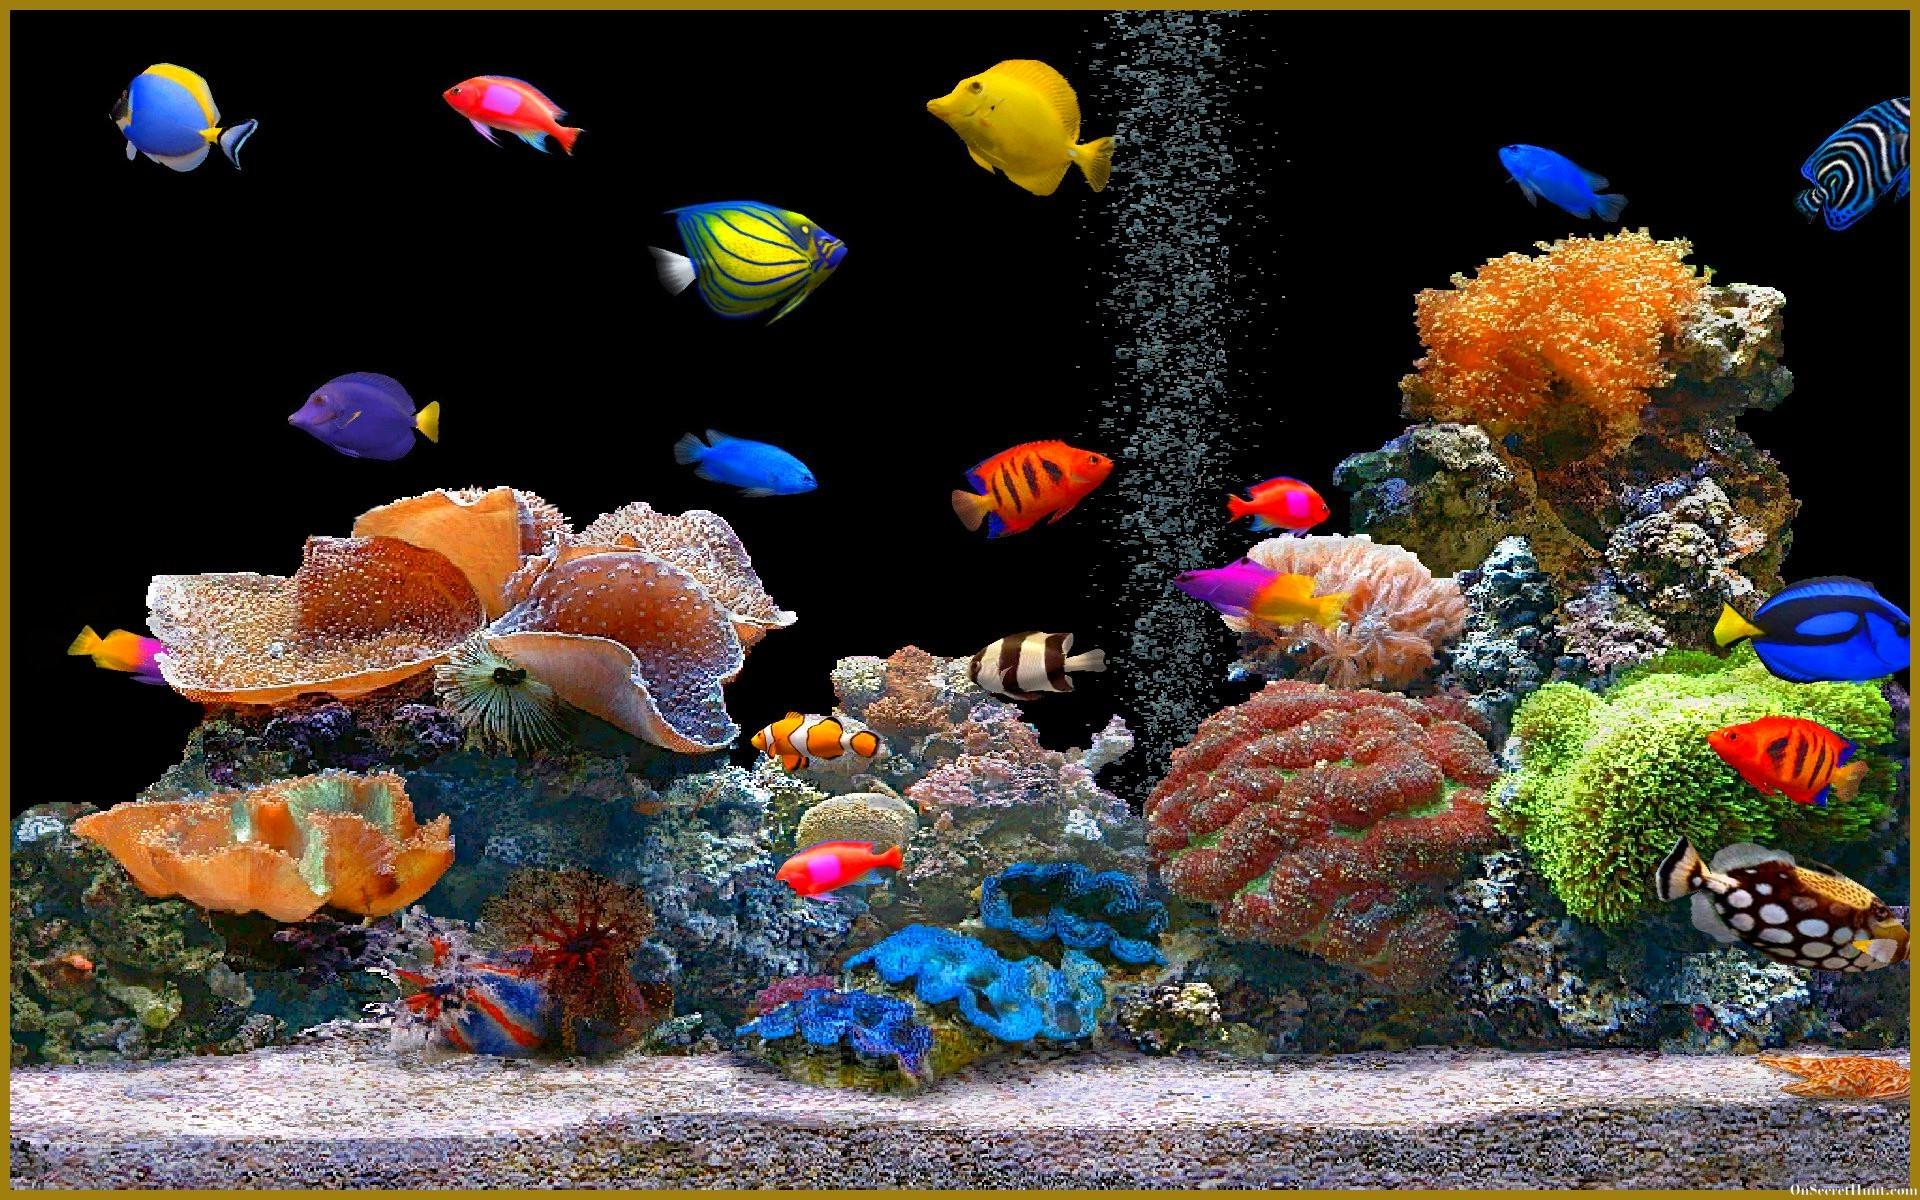 Aquarium Backgrounds, Wallpapers, Image, Pictures Design Trends